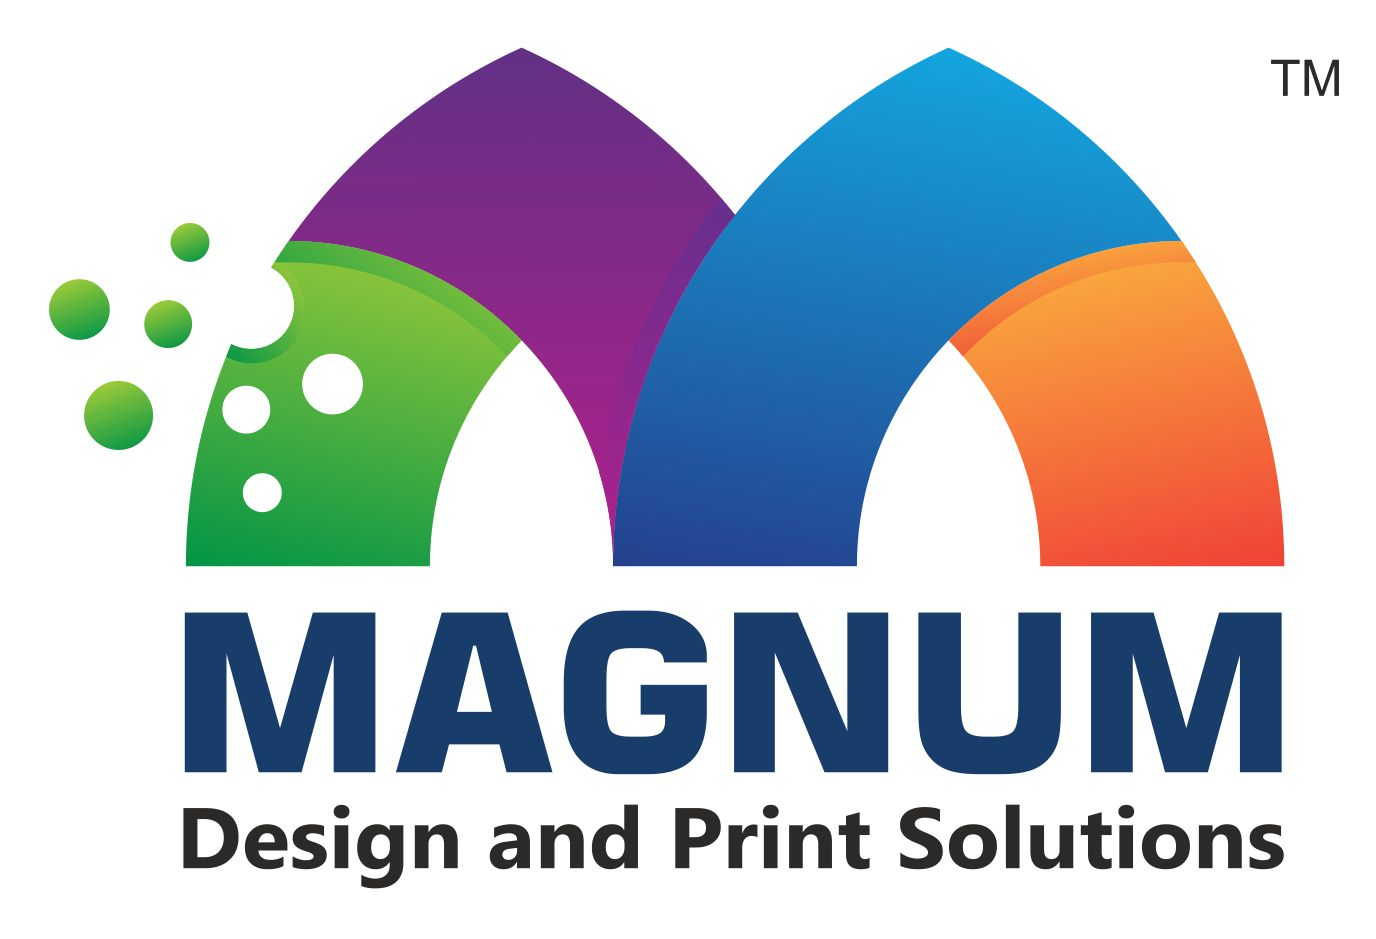 Magnum Design and Print Solutions